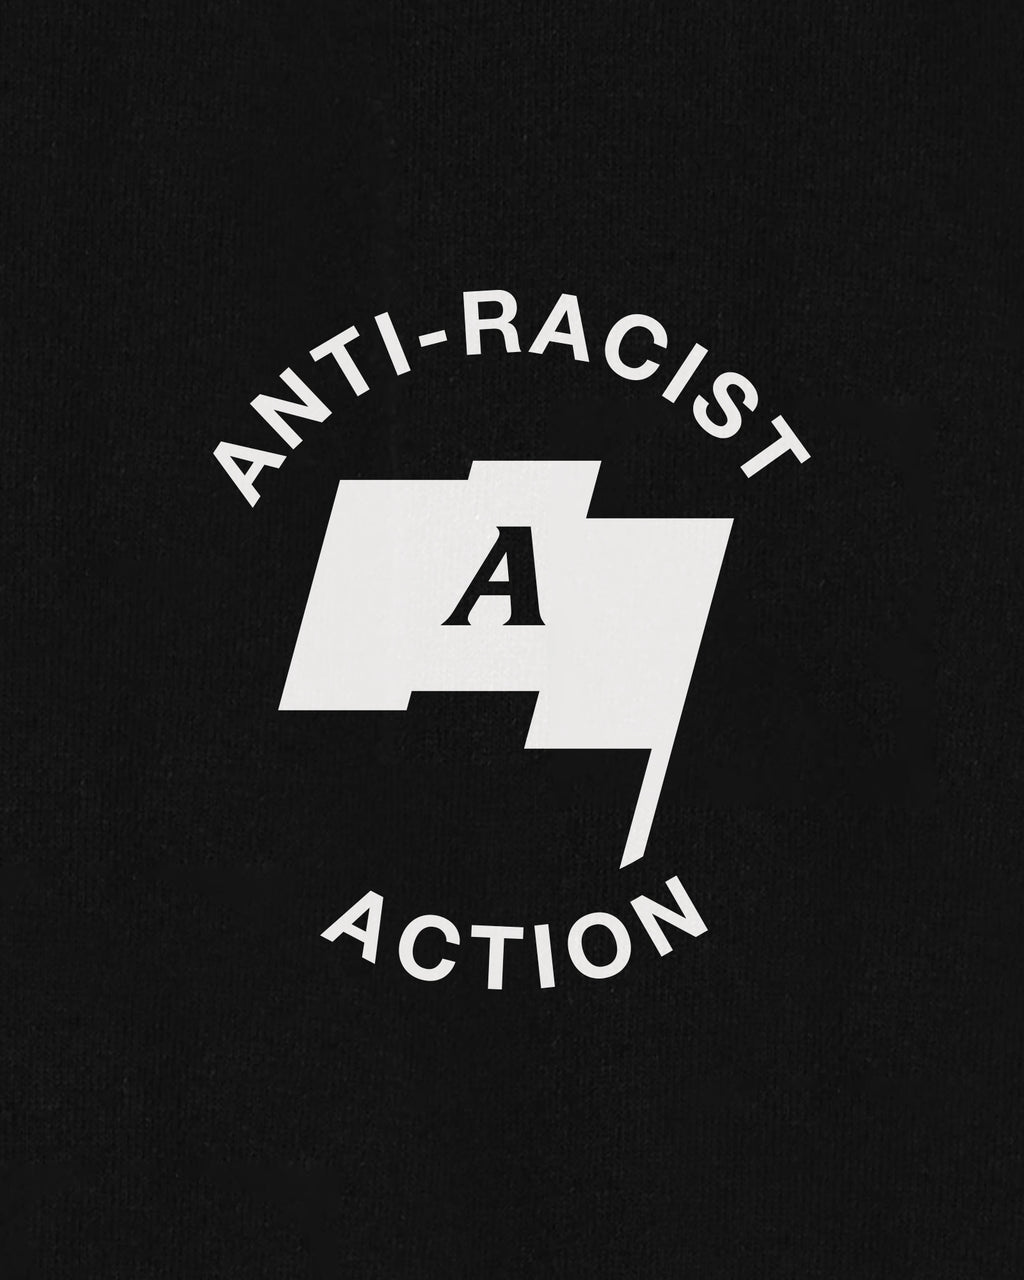 Anti-Racist Action T-Shirt Pre-Order